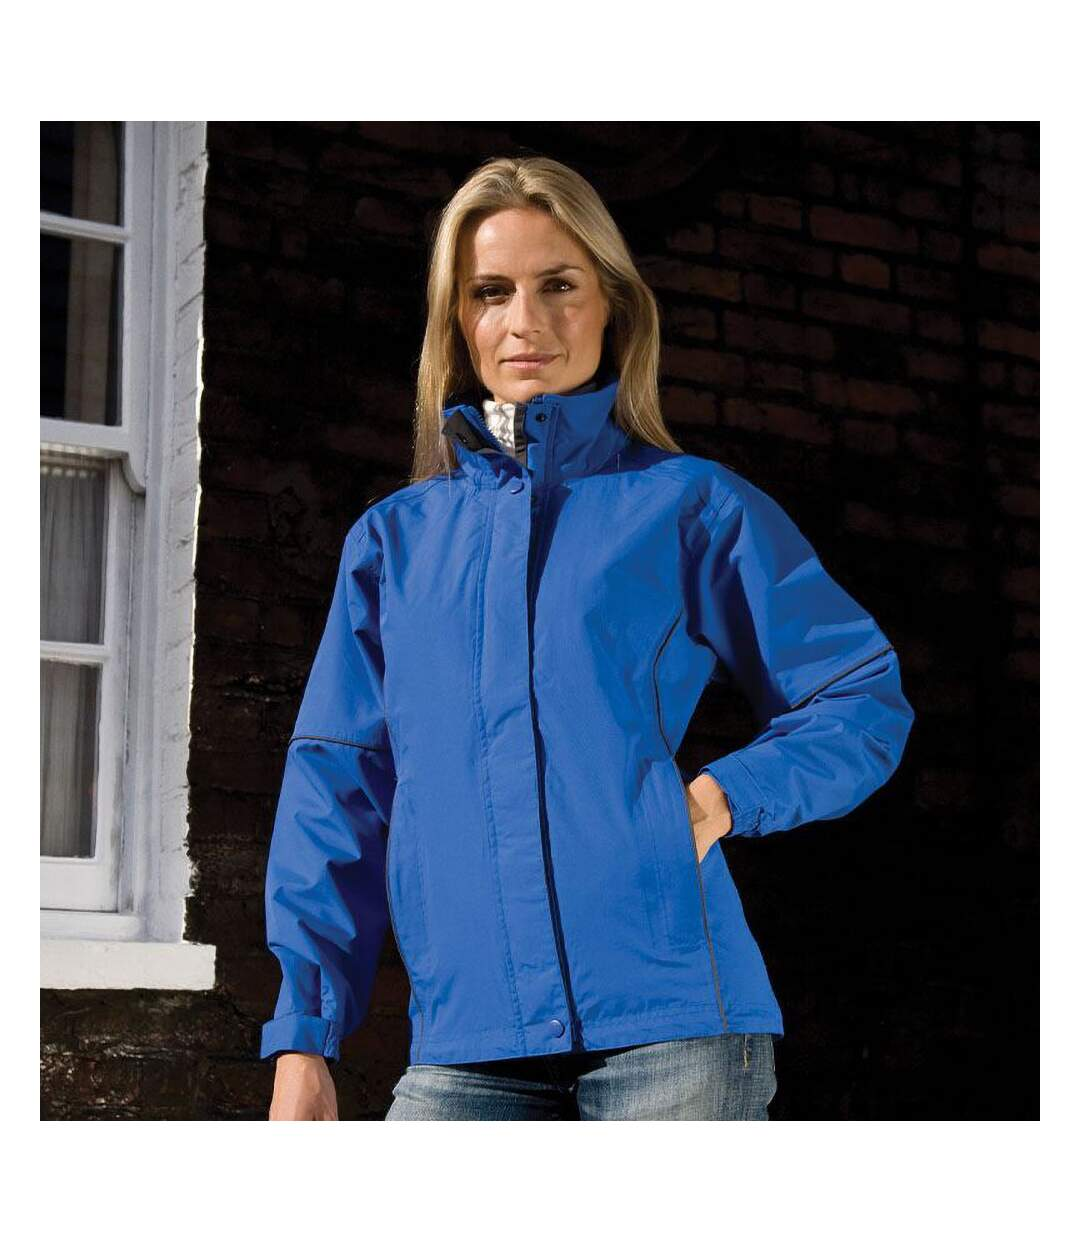 Result Womens/Ladies Urban Outdoor La Femme® Lightweight Technical Jacket (Waterproof & Windproof) (Royal) - UTRW3243